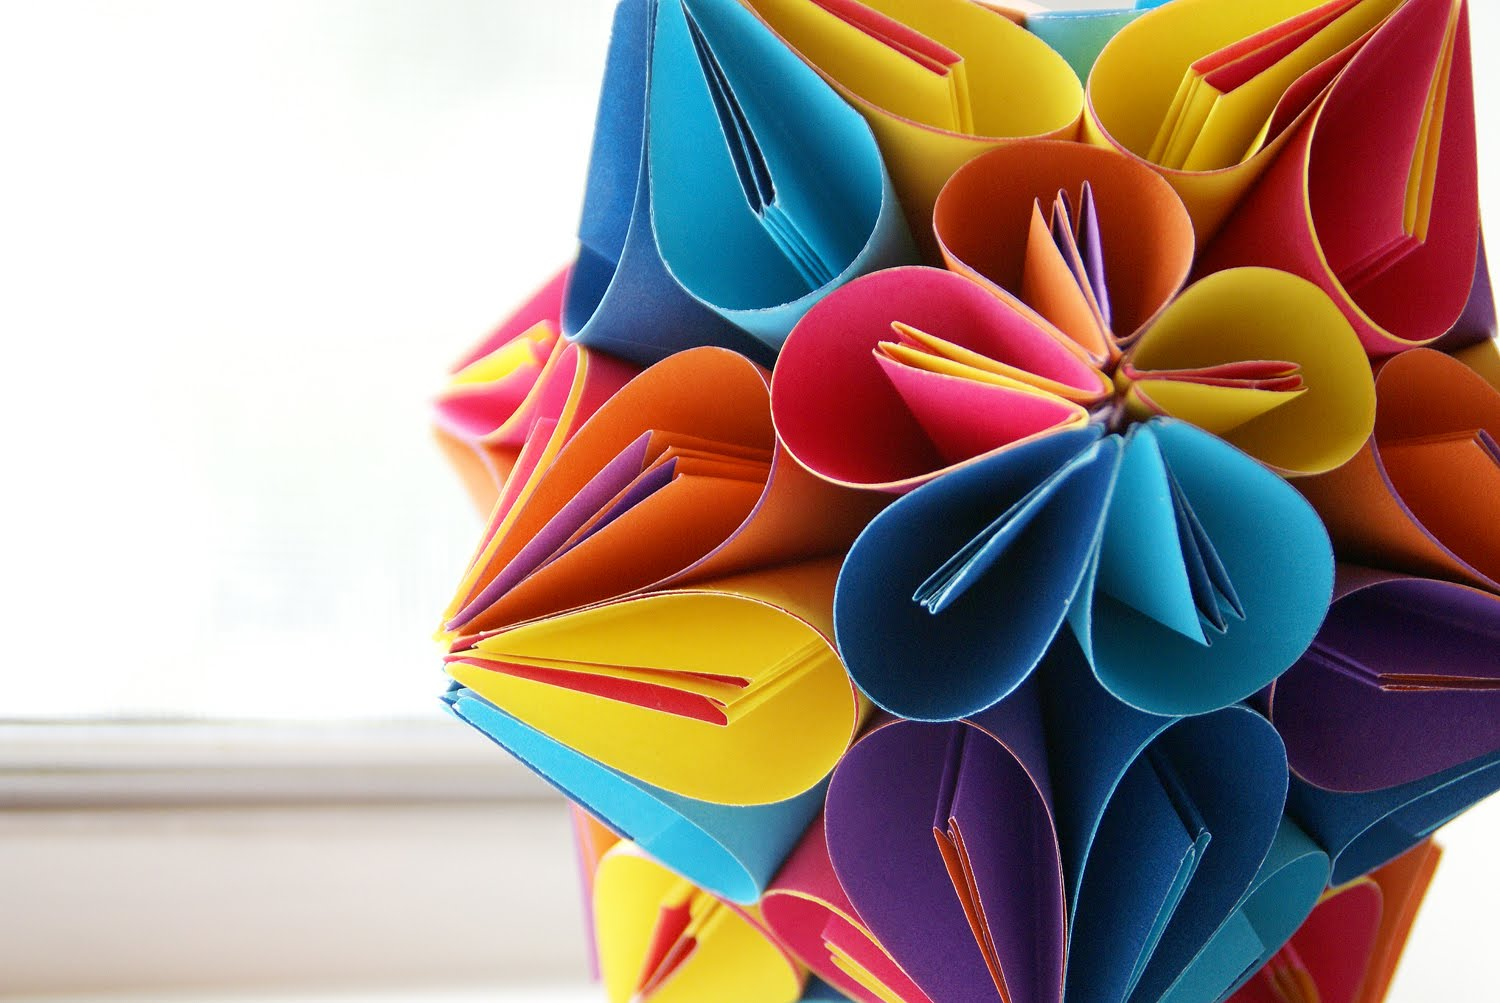 How to make origami kusudama flower step by step - Uses Of Kusudama Paper Flower Balls